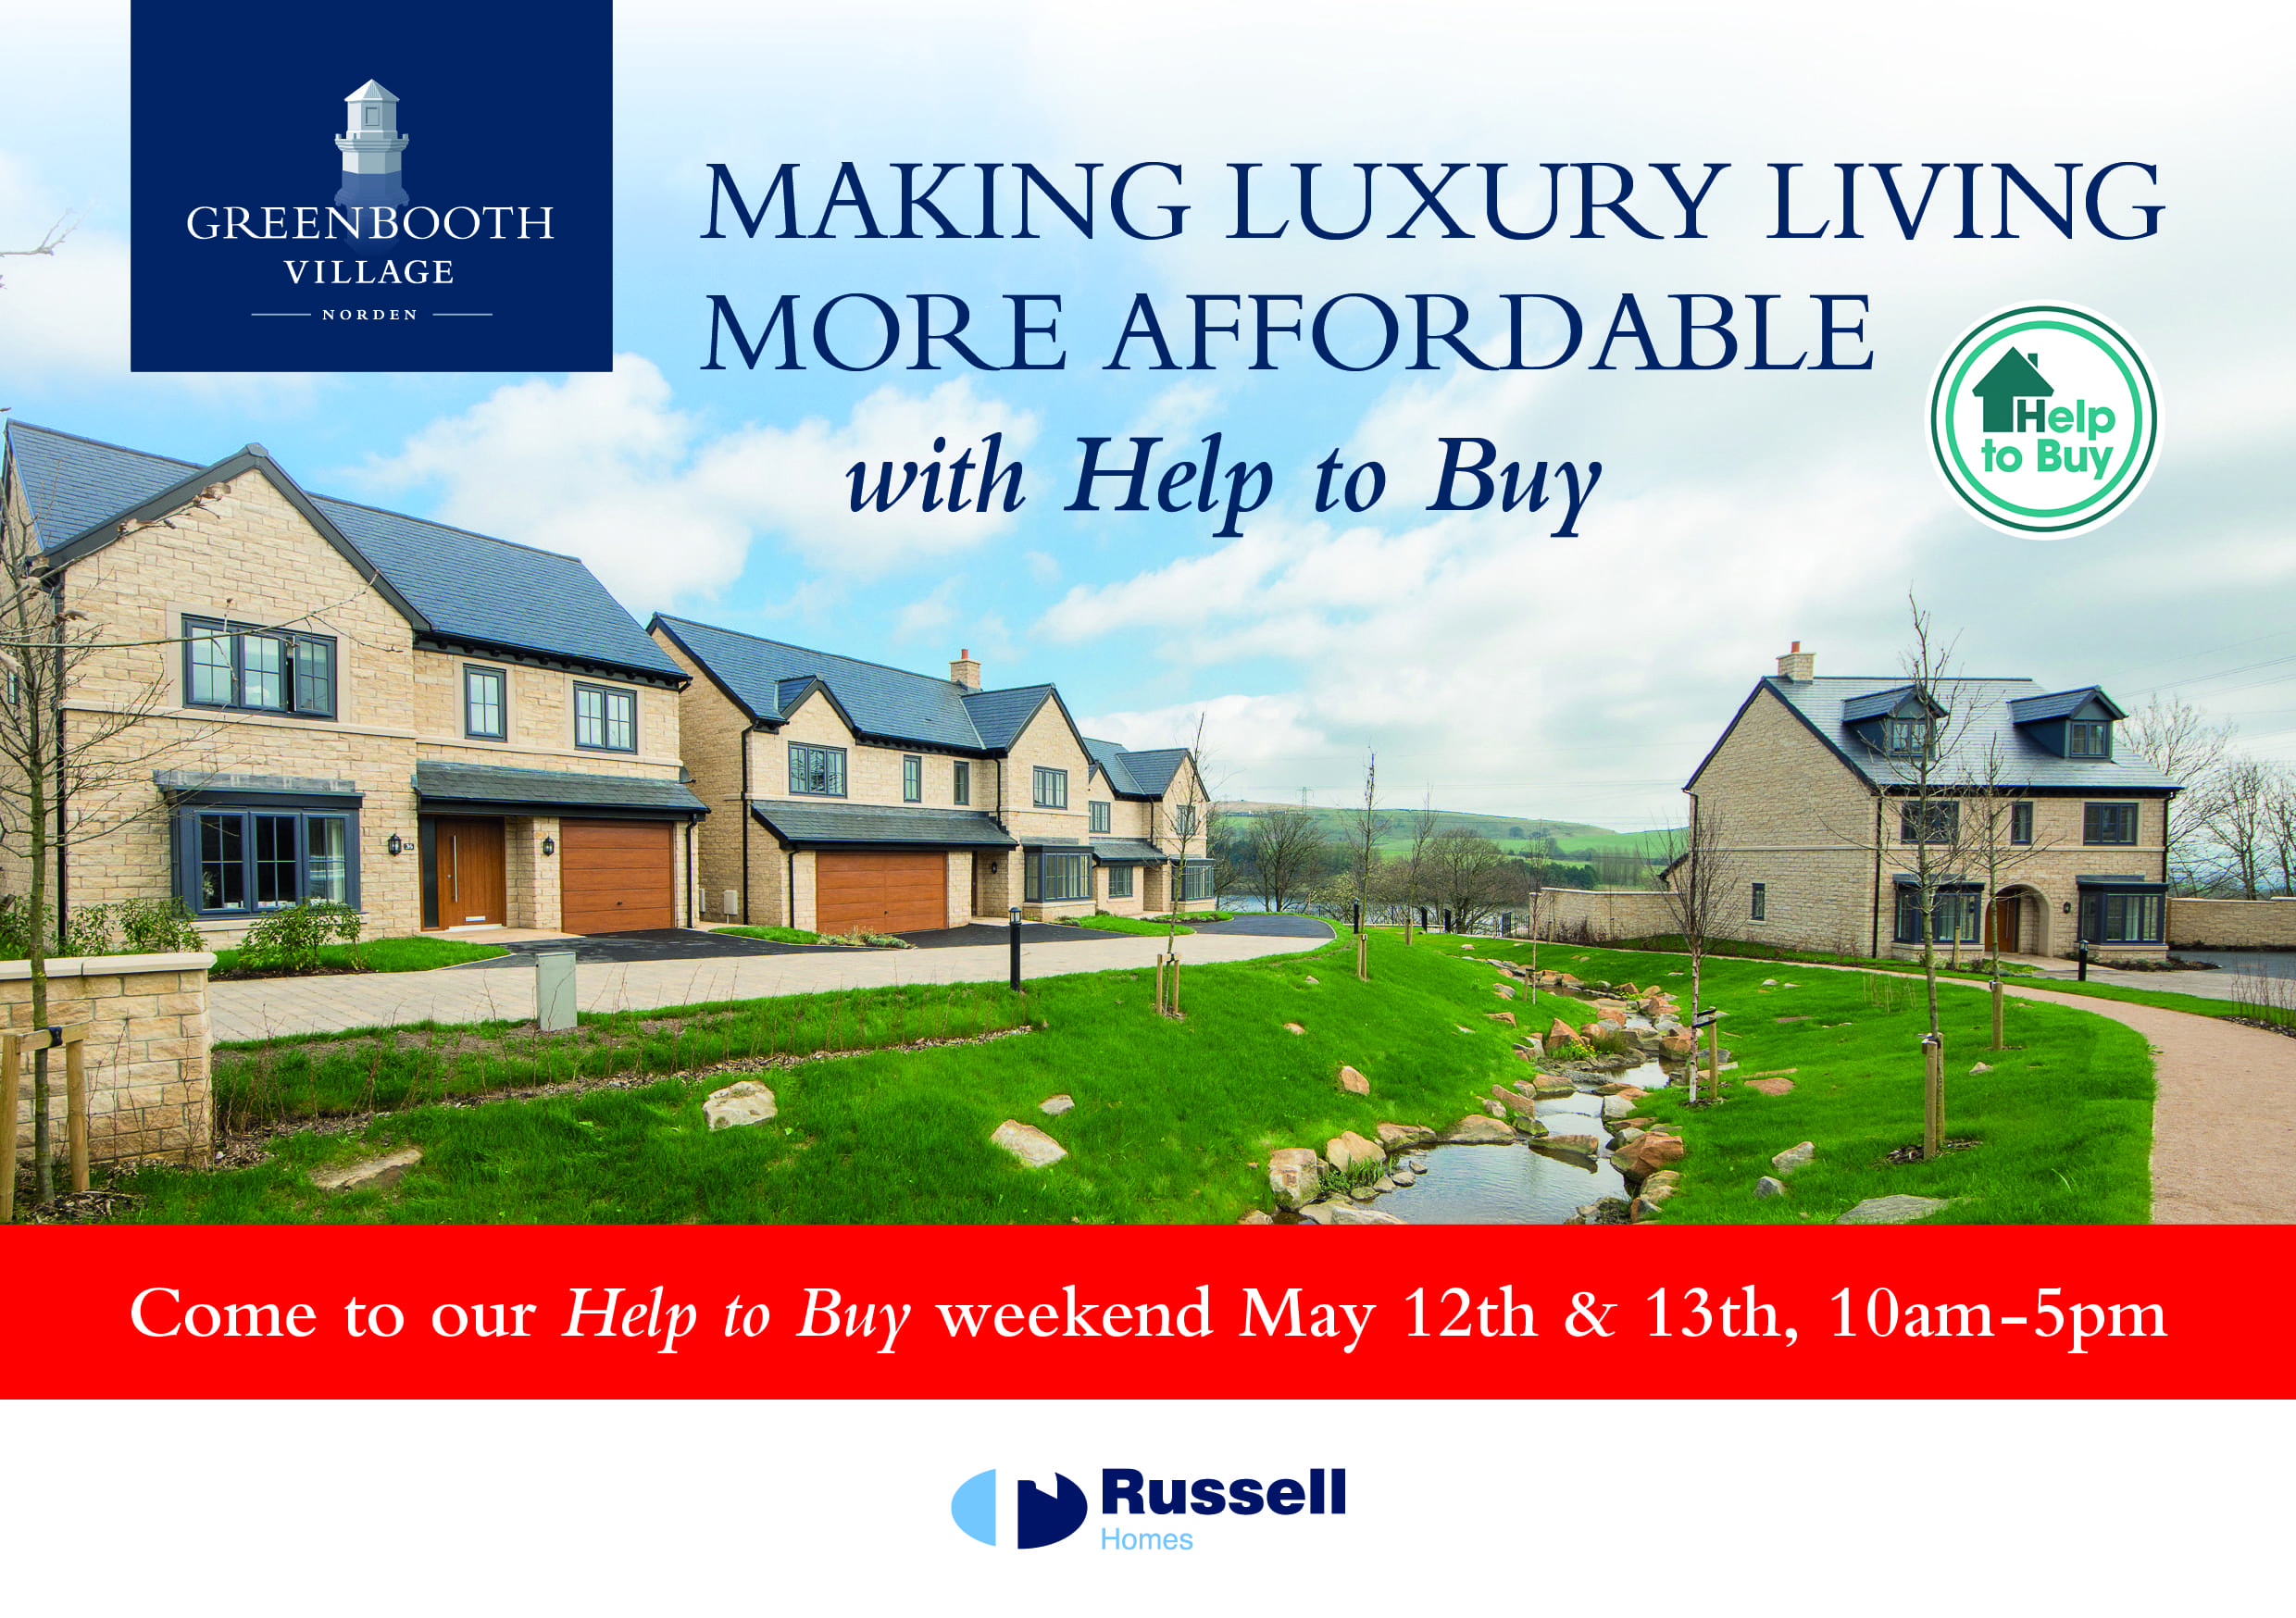 Russell Homes Greenbooth Village Help to Buy weekend 1